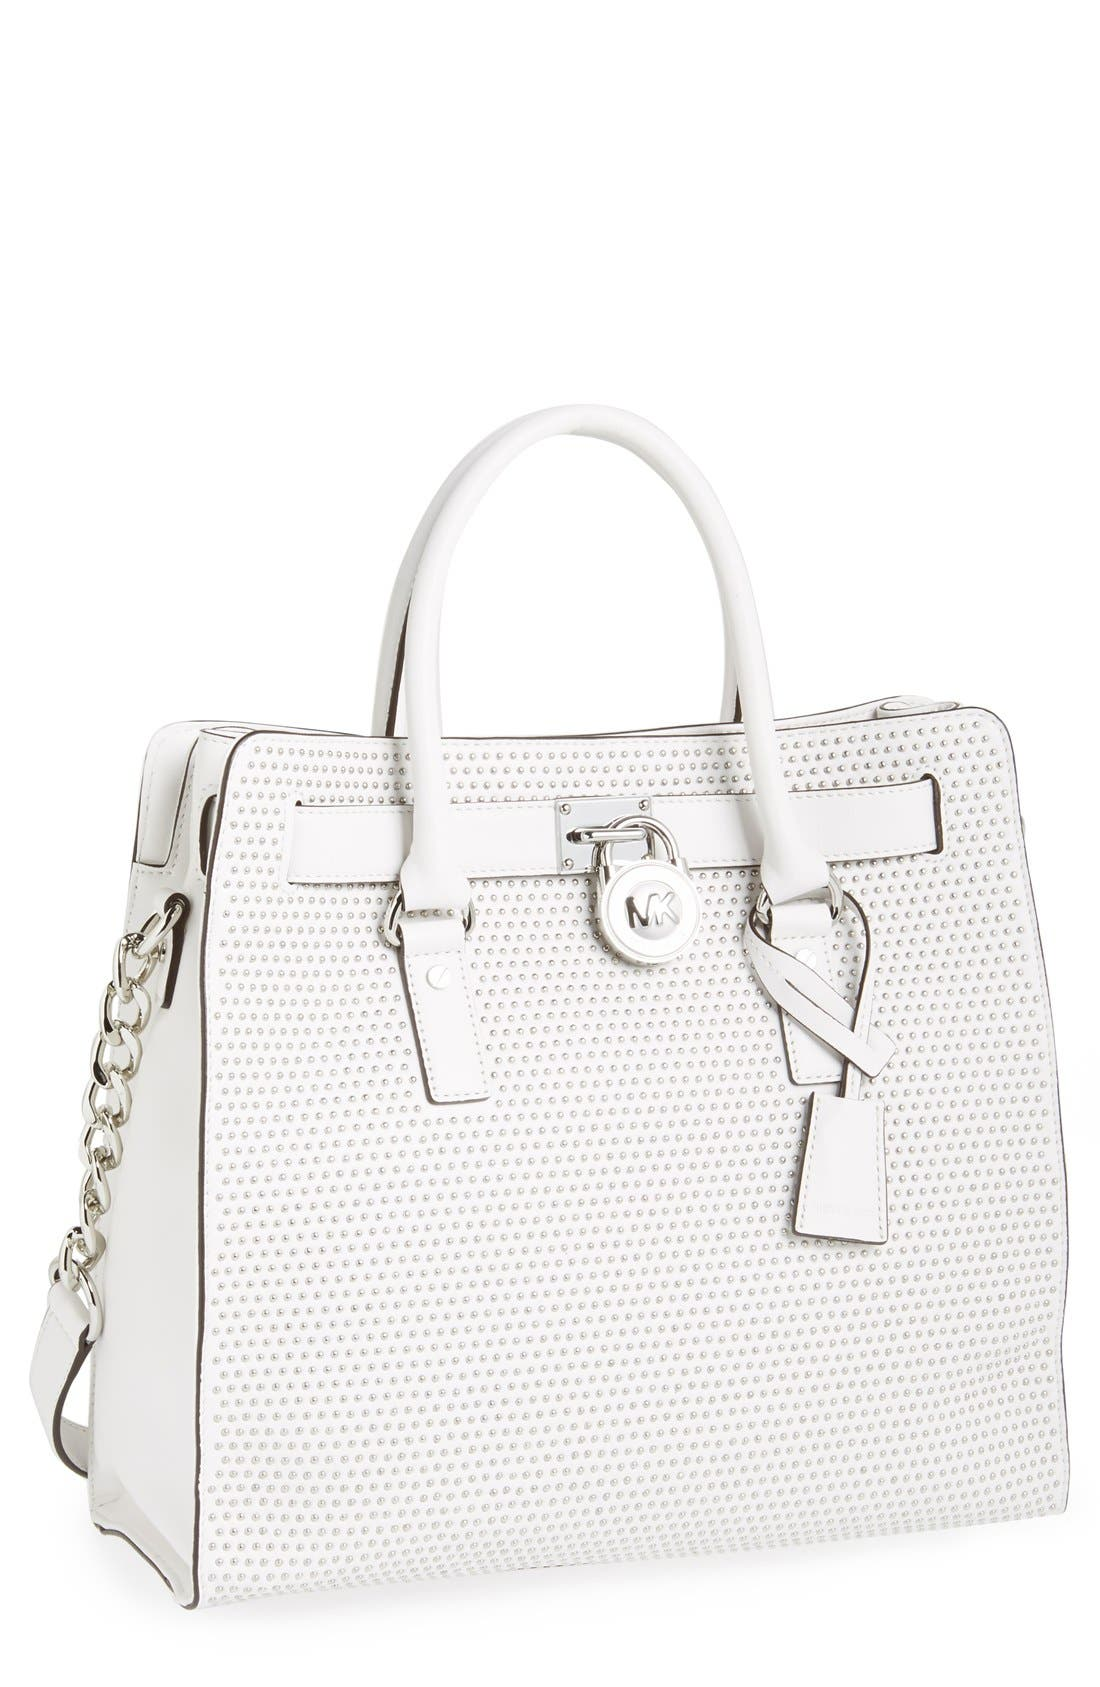 Alternate Image 1 Selected - MICHAEL Michael Kors 'Large Hamilton - Microstud' Leather Tote